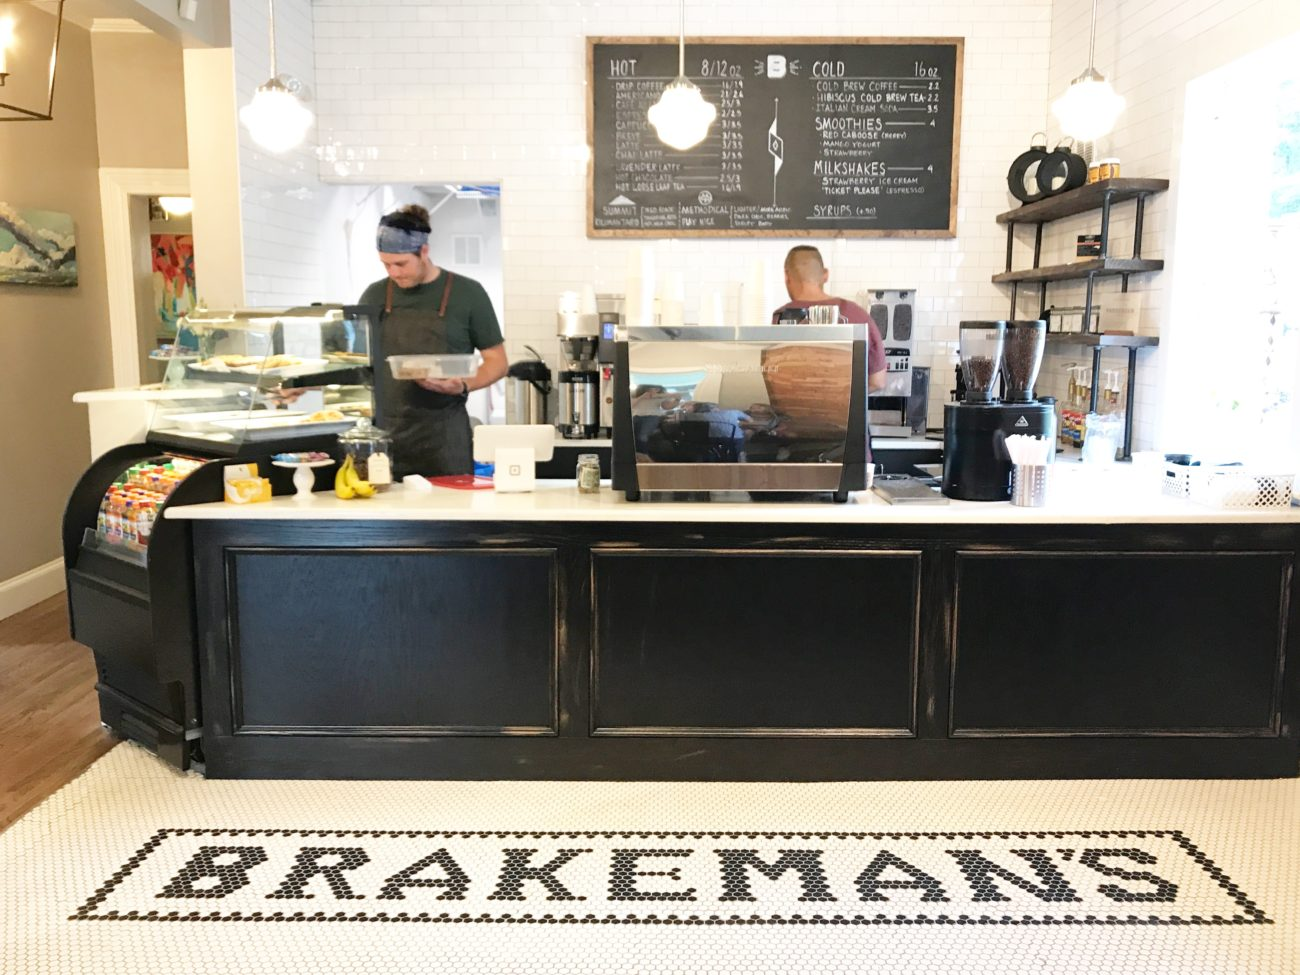 1299faf32f1 Inside Brakeman's Coffee, the cute little coffee shop making a big splash  in downtown Matthews